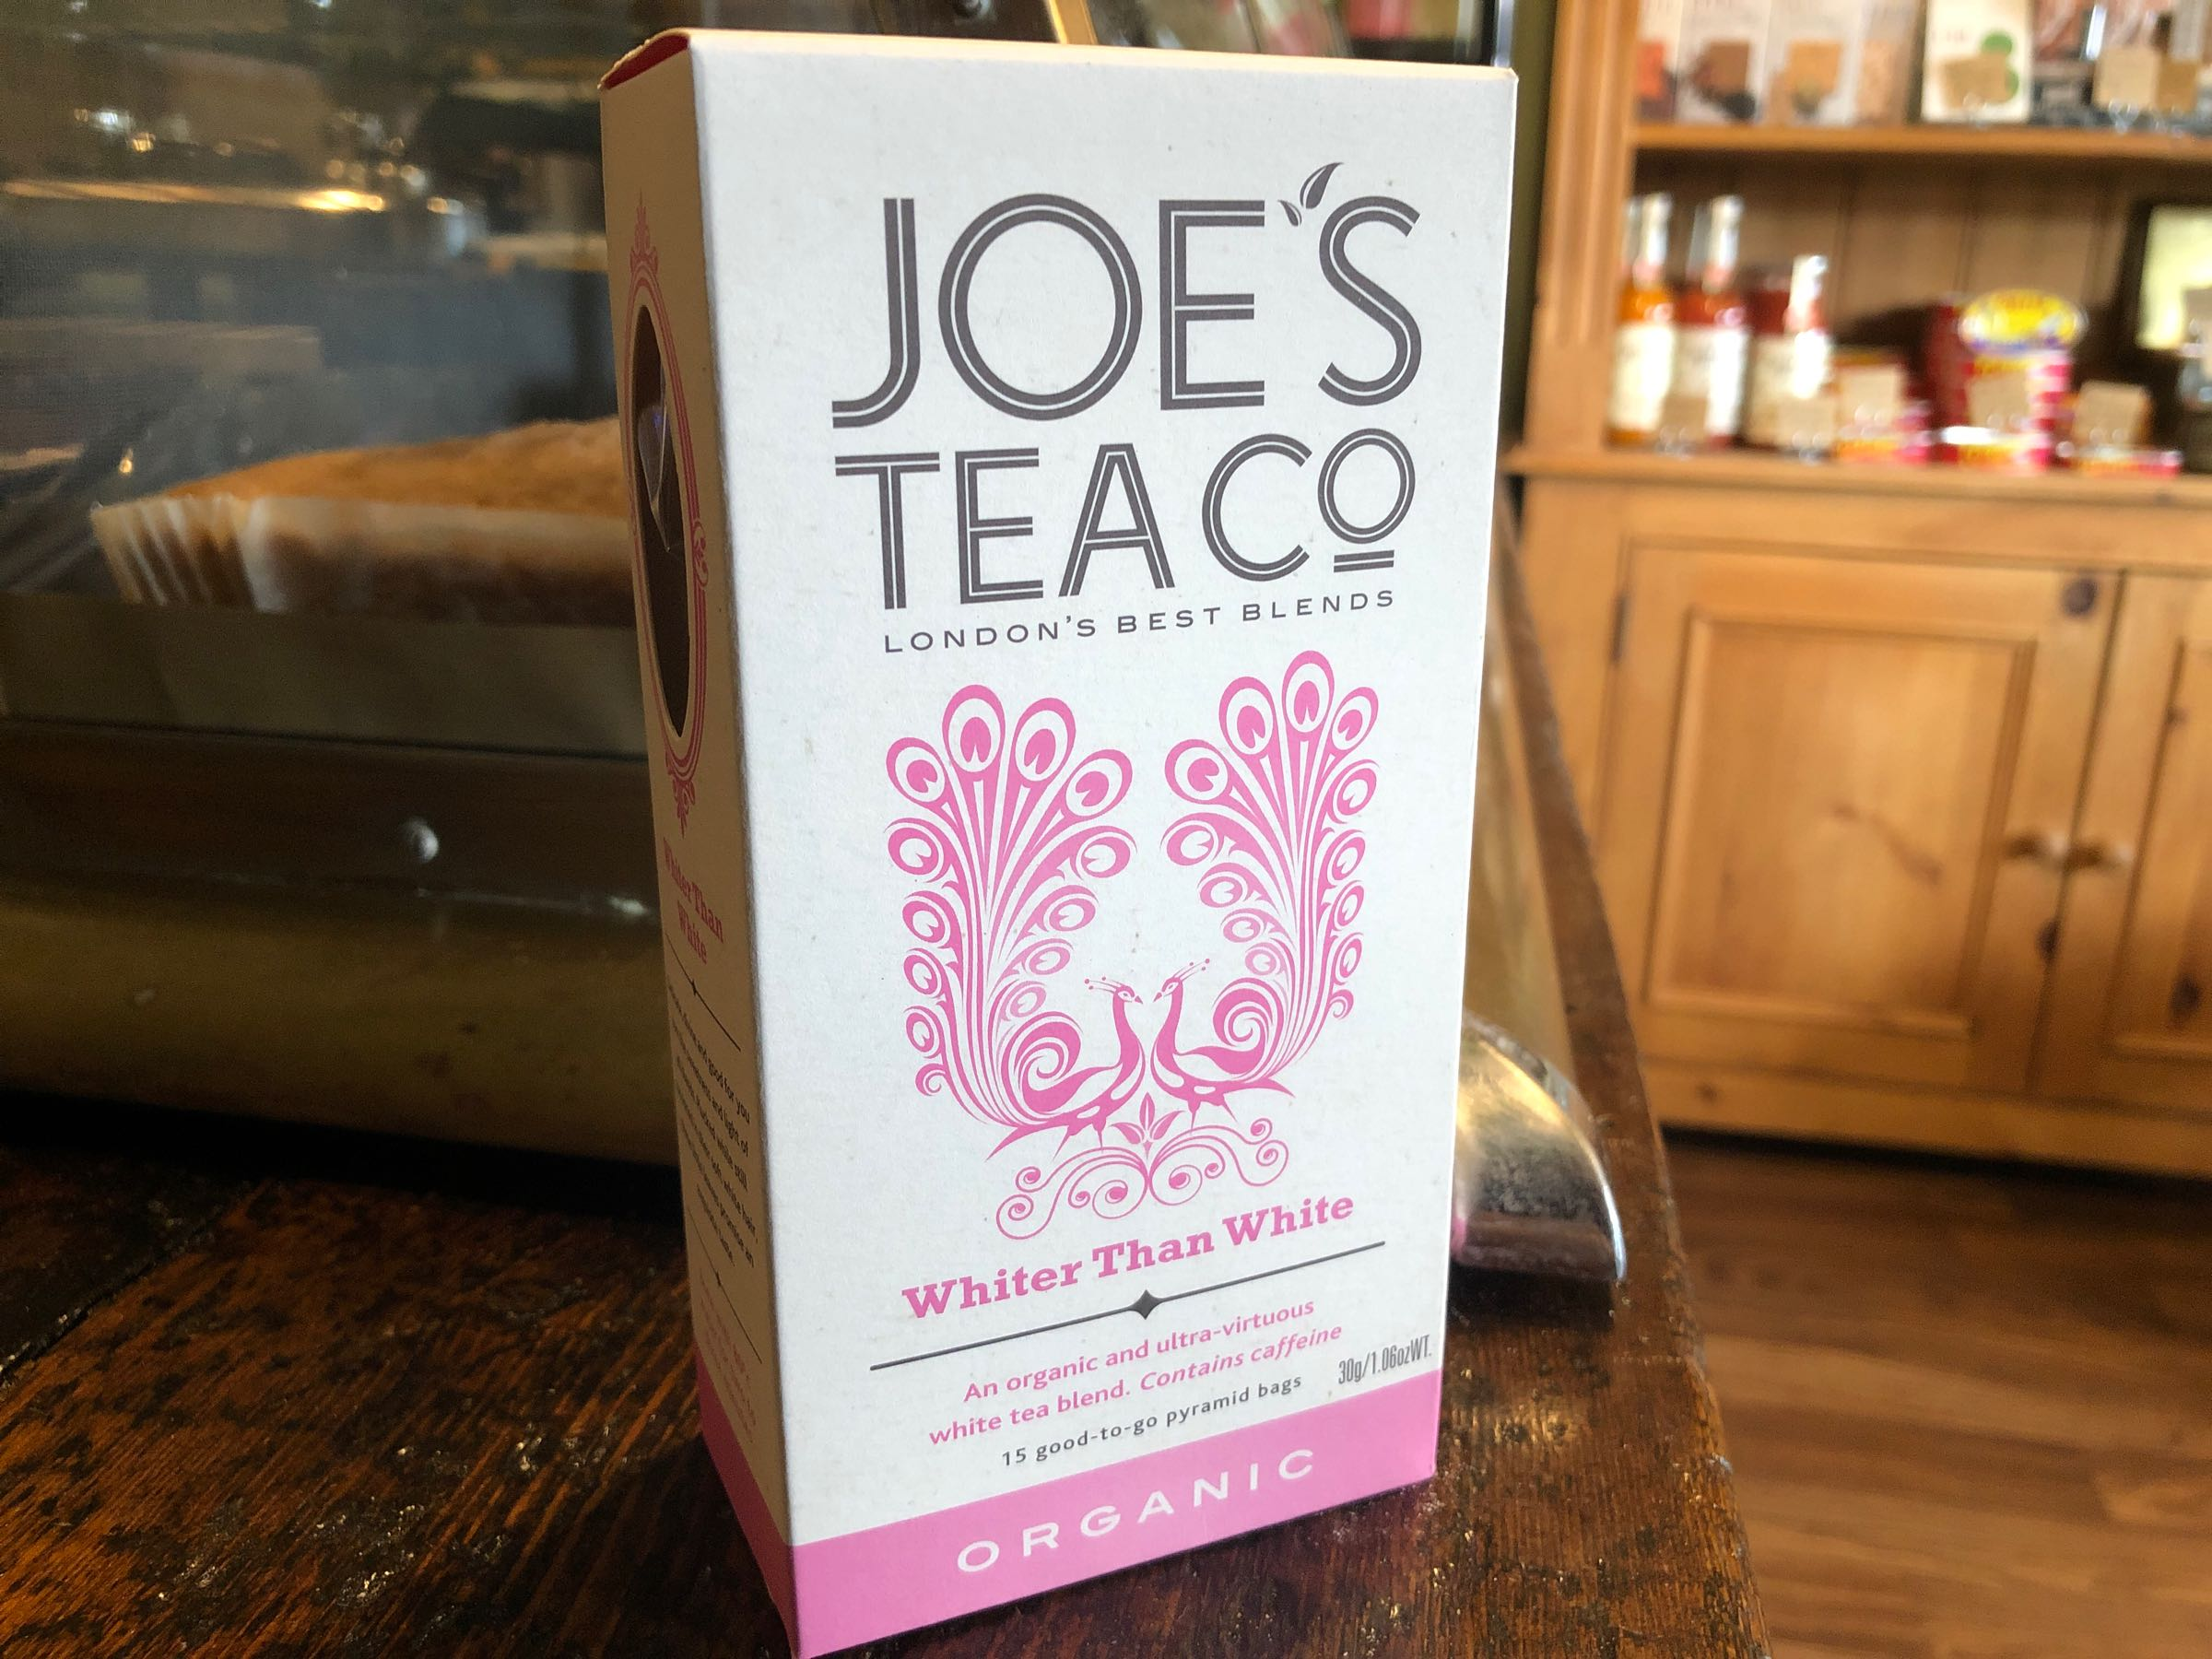 Joe's Tea Co. Whiter than White - Organic